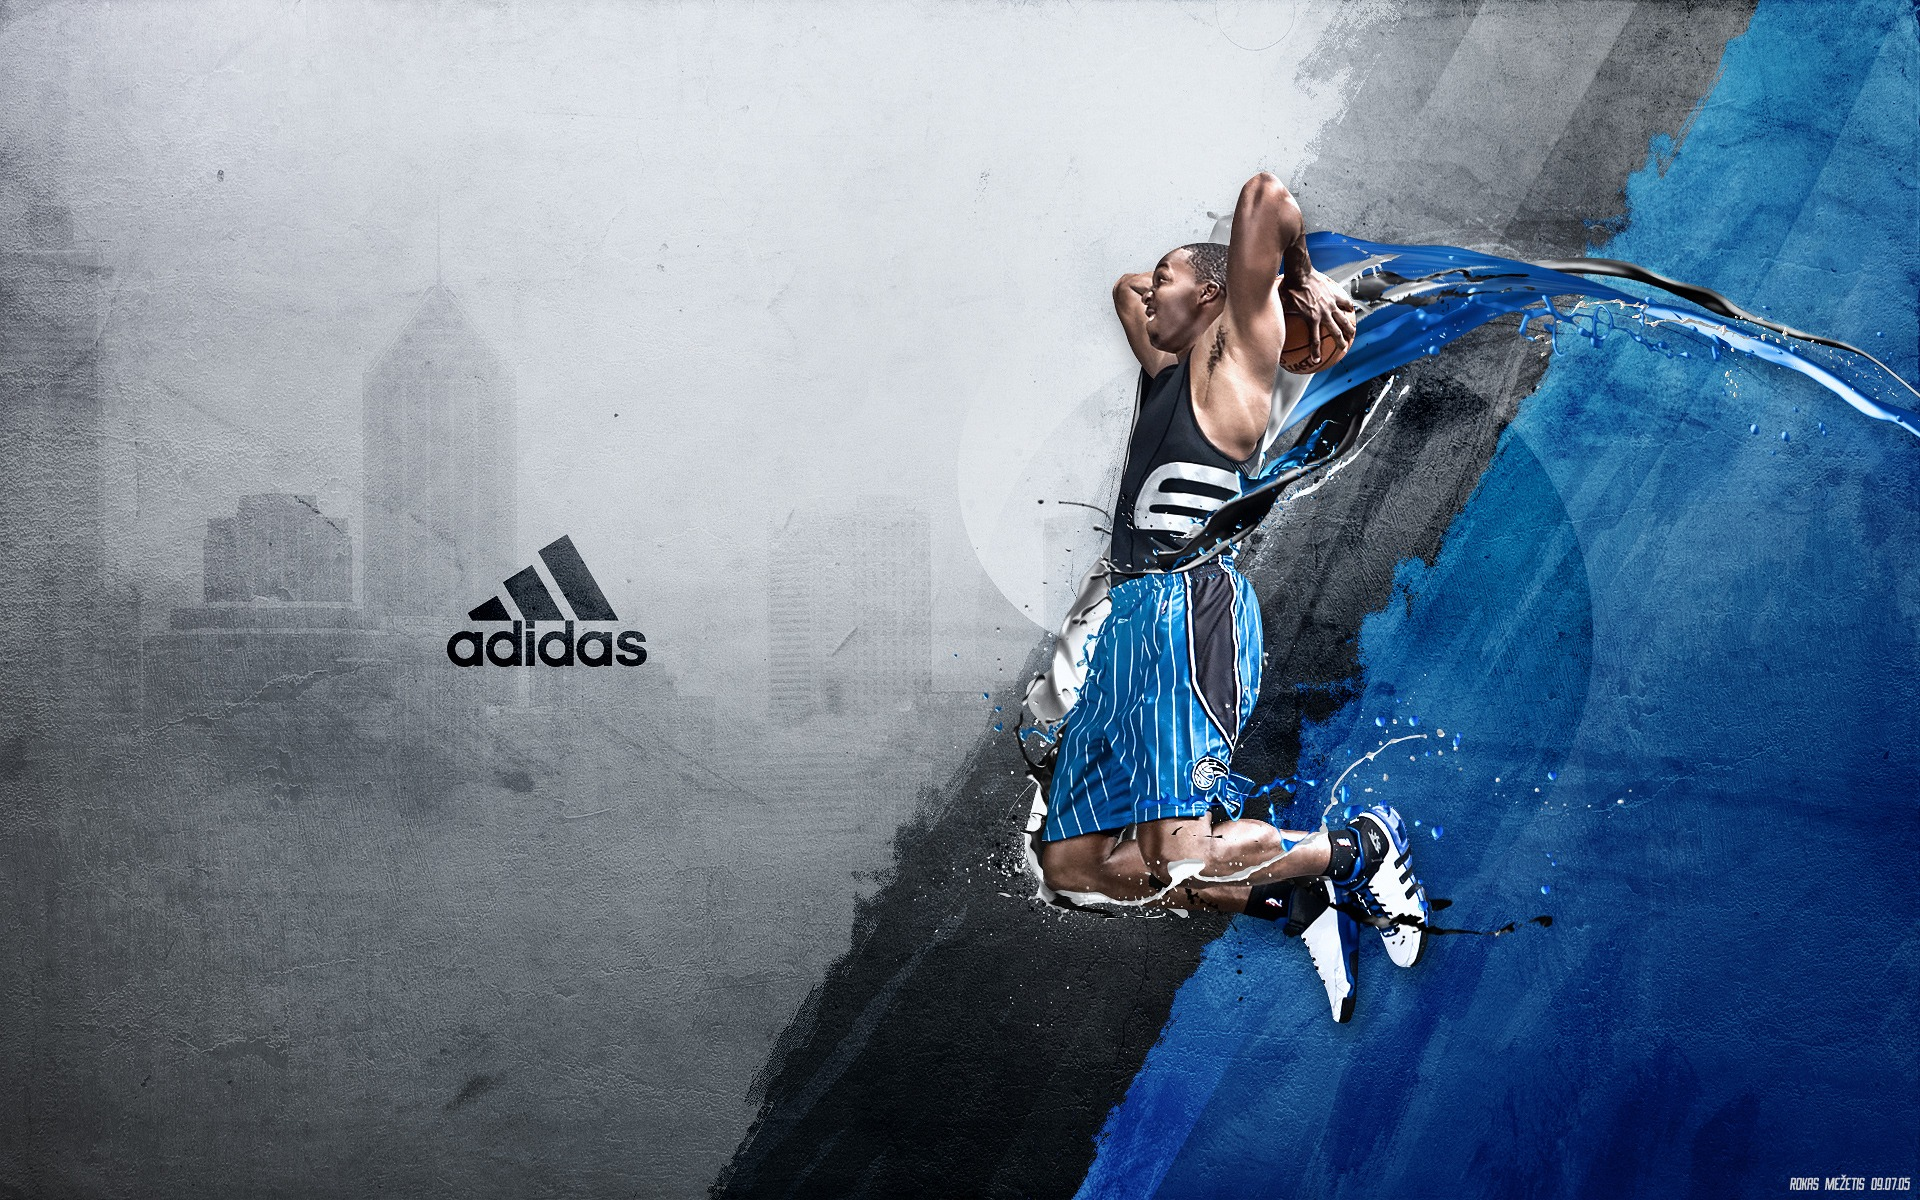 NBA Wallpaper Adidas Sportsman